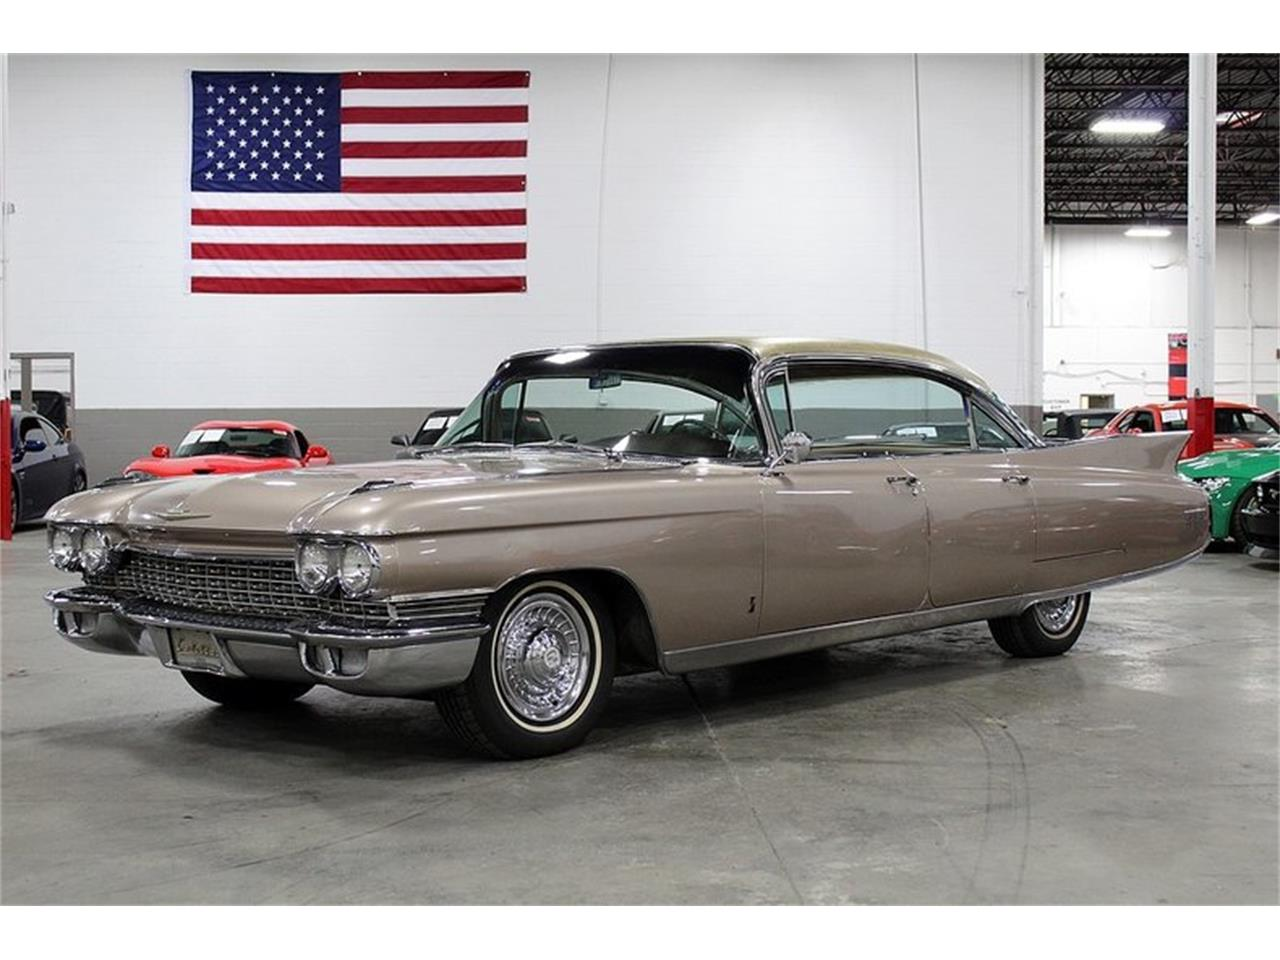 For Sale: 1960 Cadillac Fleetwood in Kentwood, Michigan